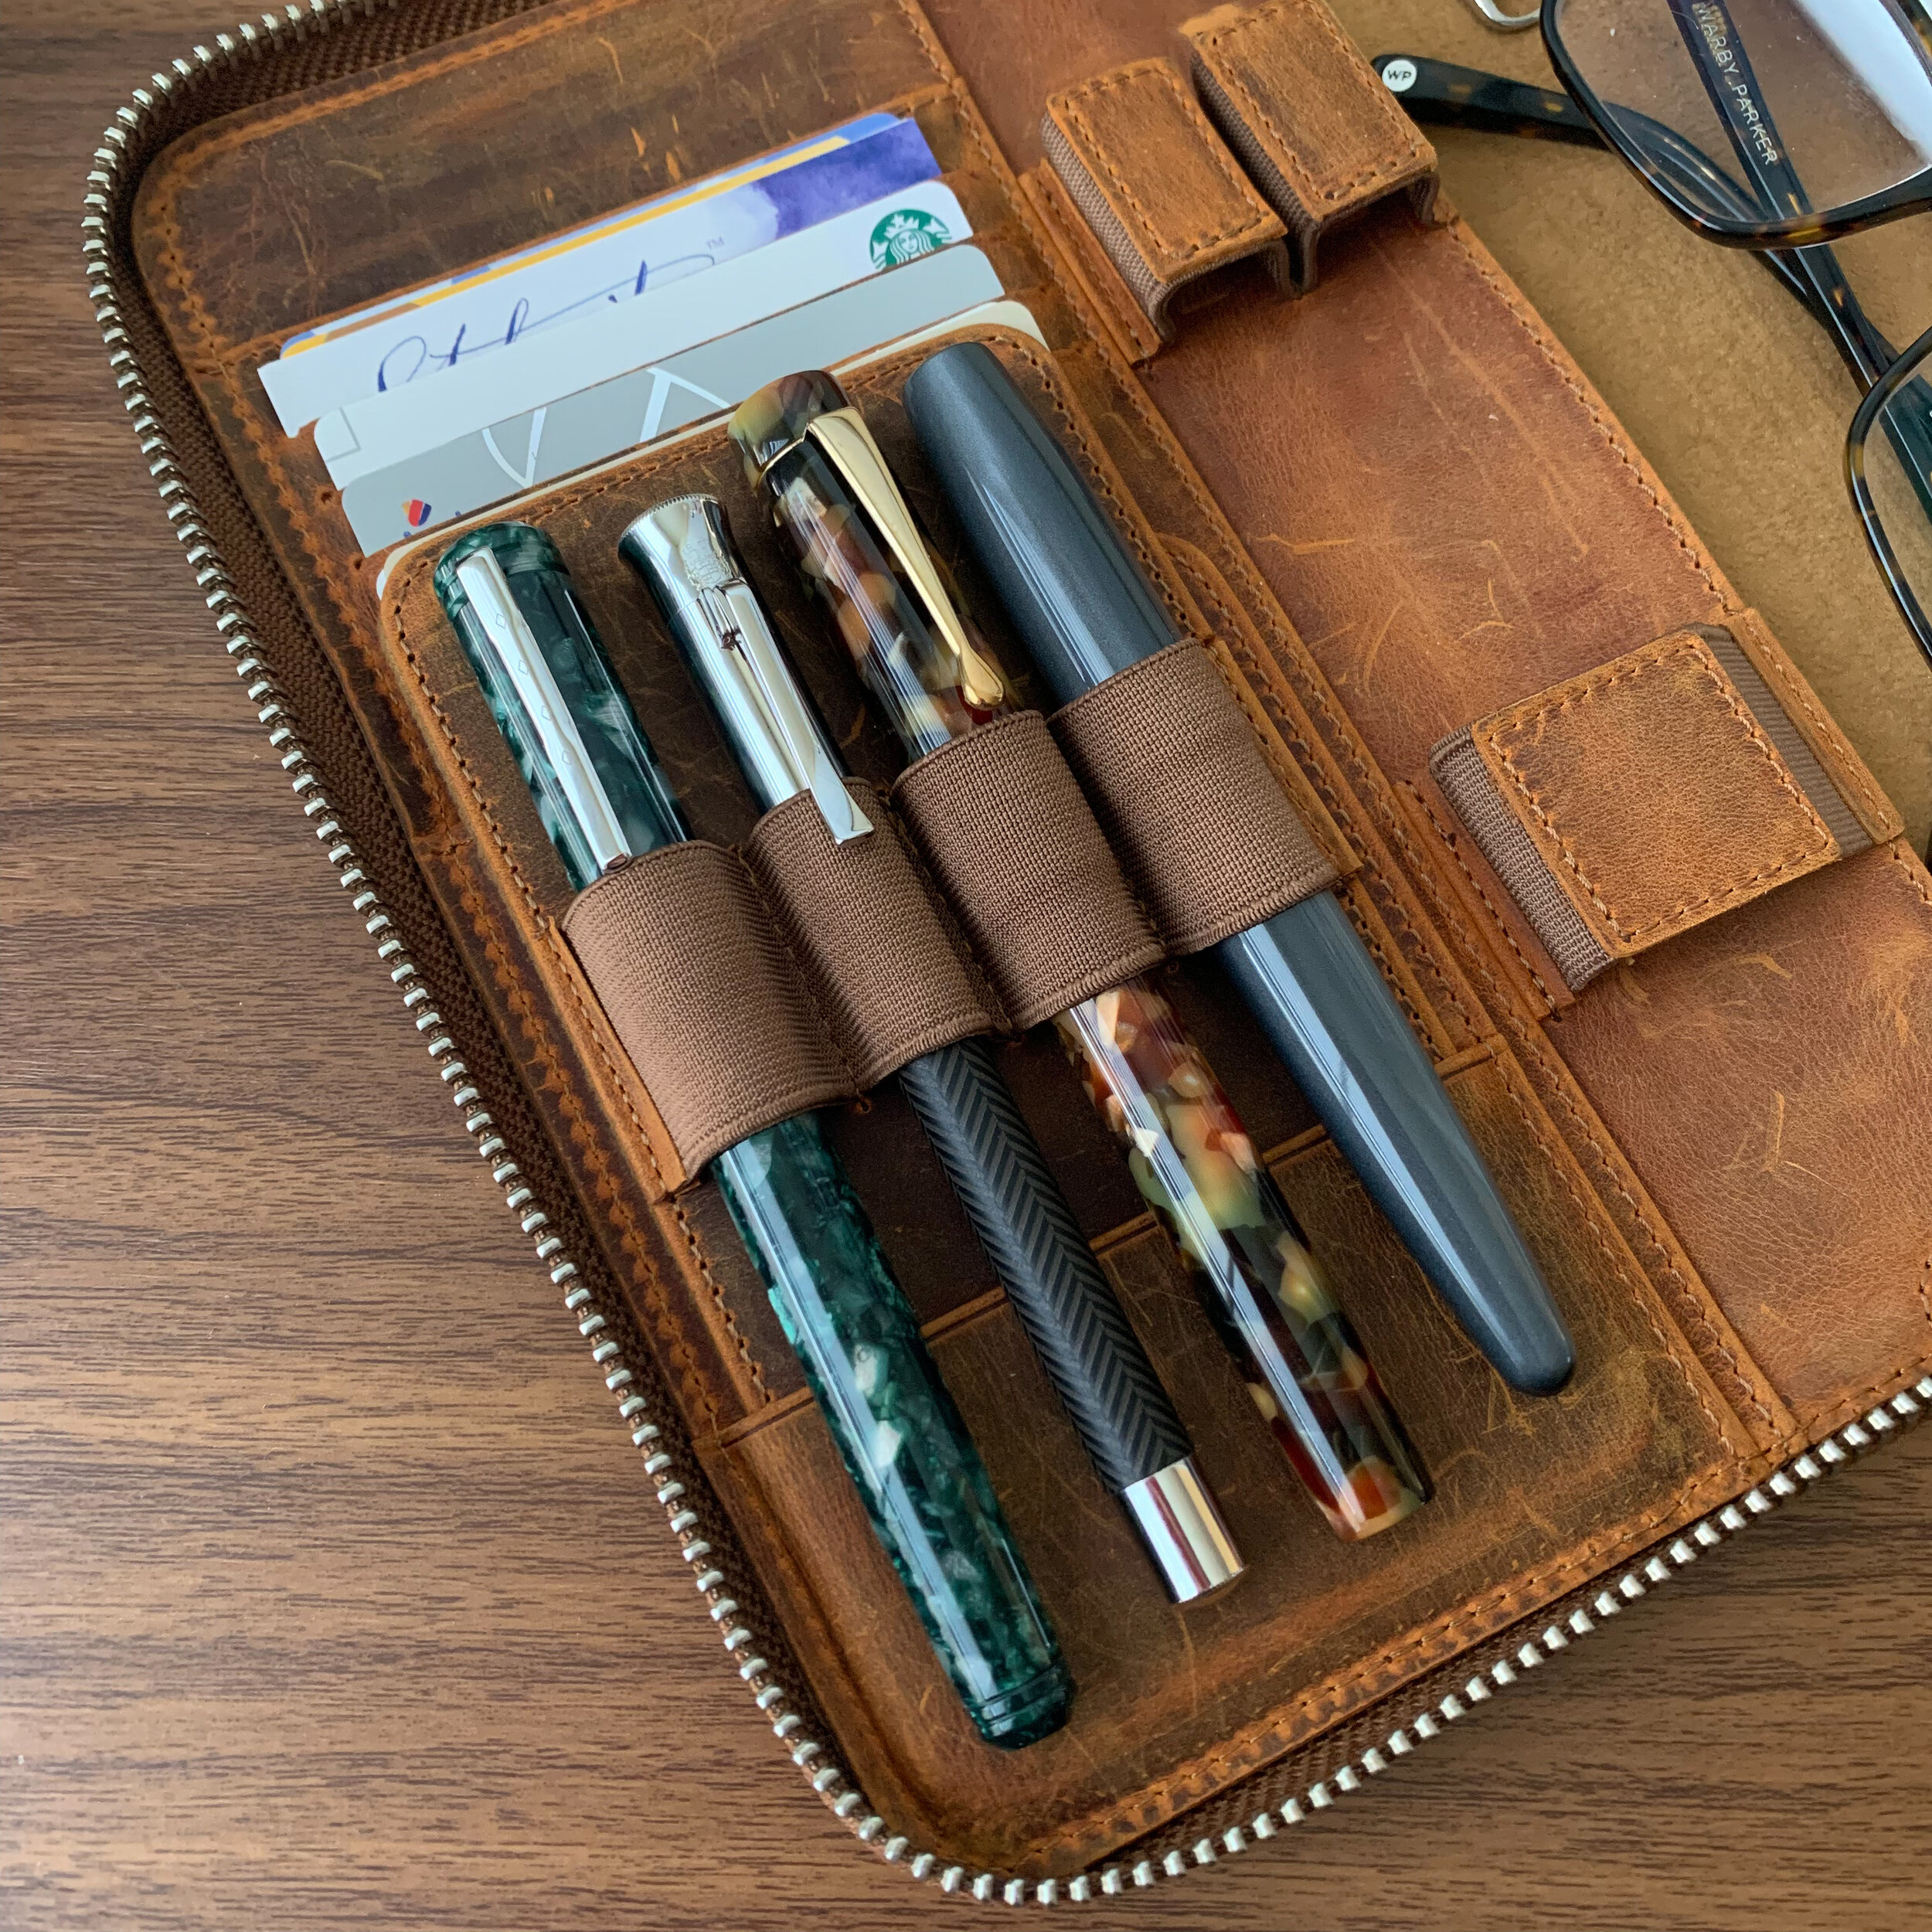 The Graf von Faber-Castell Classic Cisele has become a favorite of mine. Check out some additional GvFC pens I've highlighted in this week's Deals & Drops.